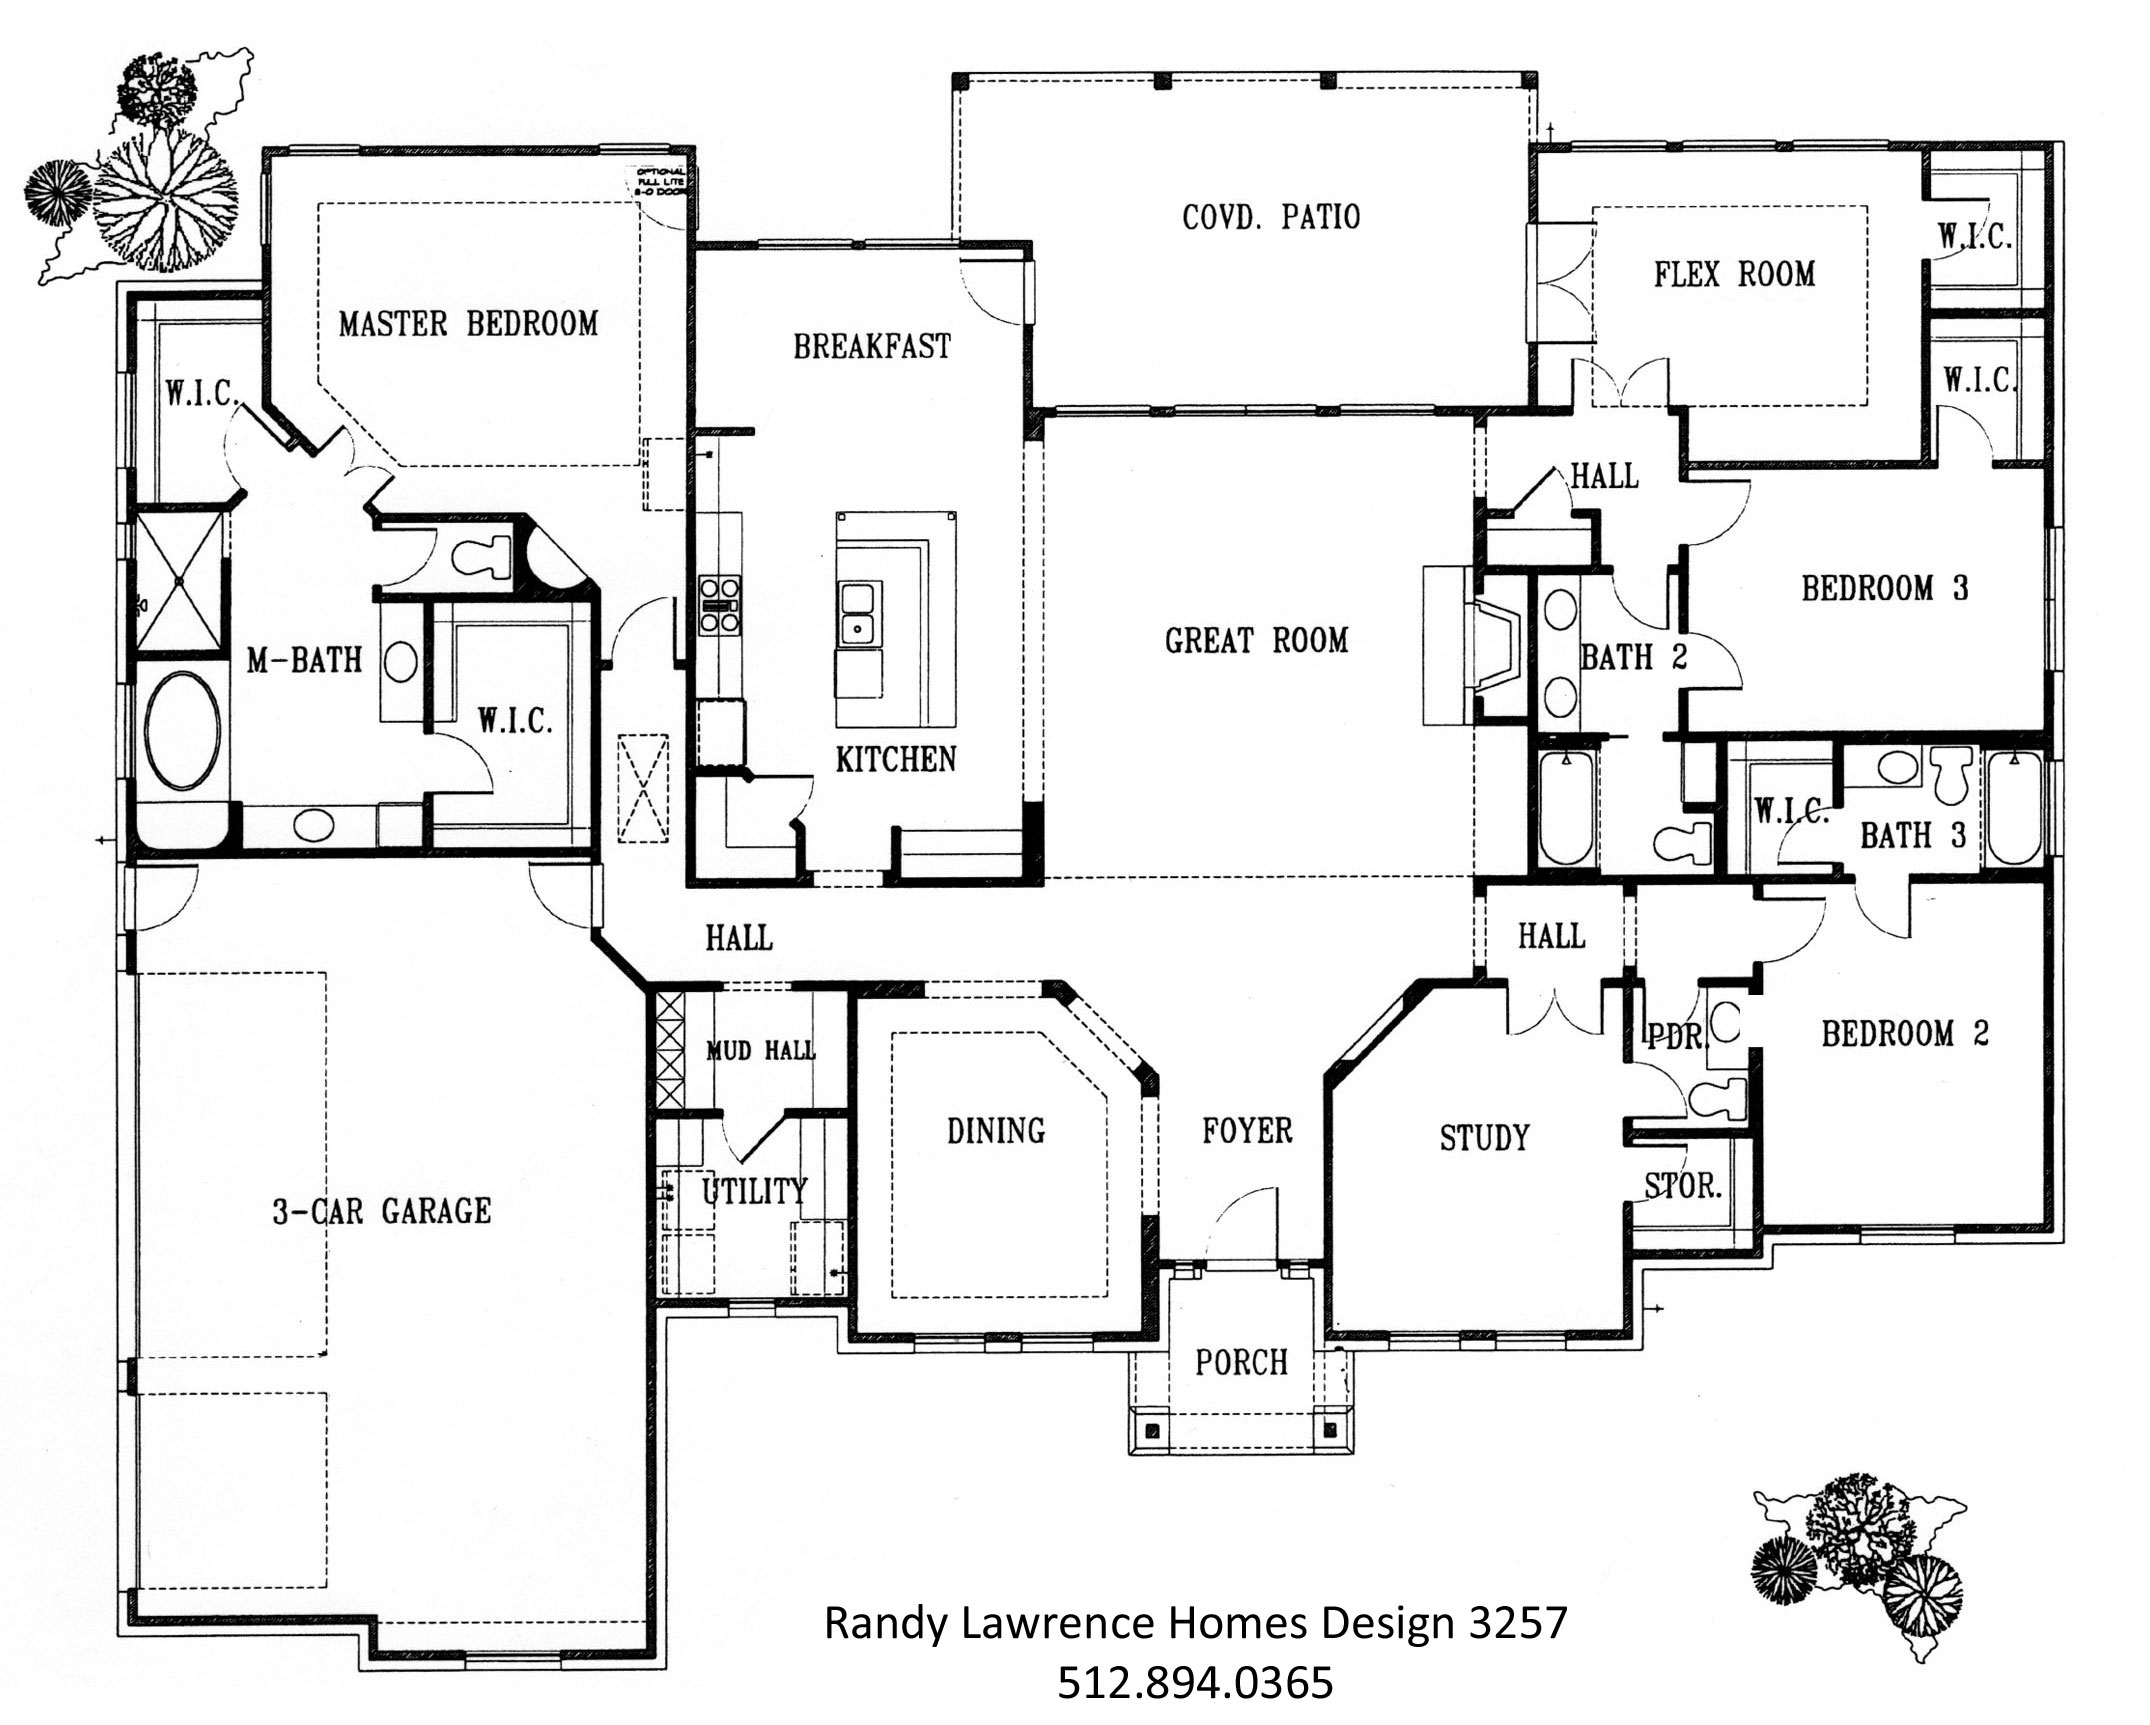 Wonderful Randy Lawrence Homes Floor Plan 3257